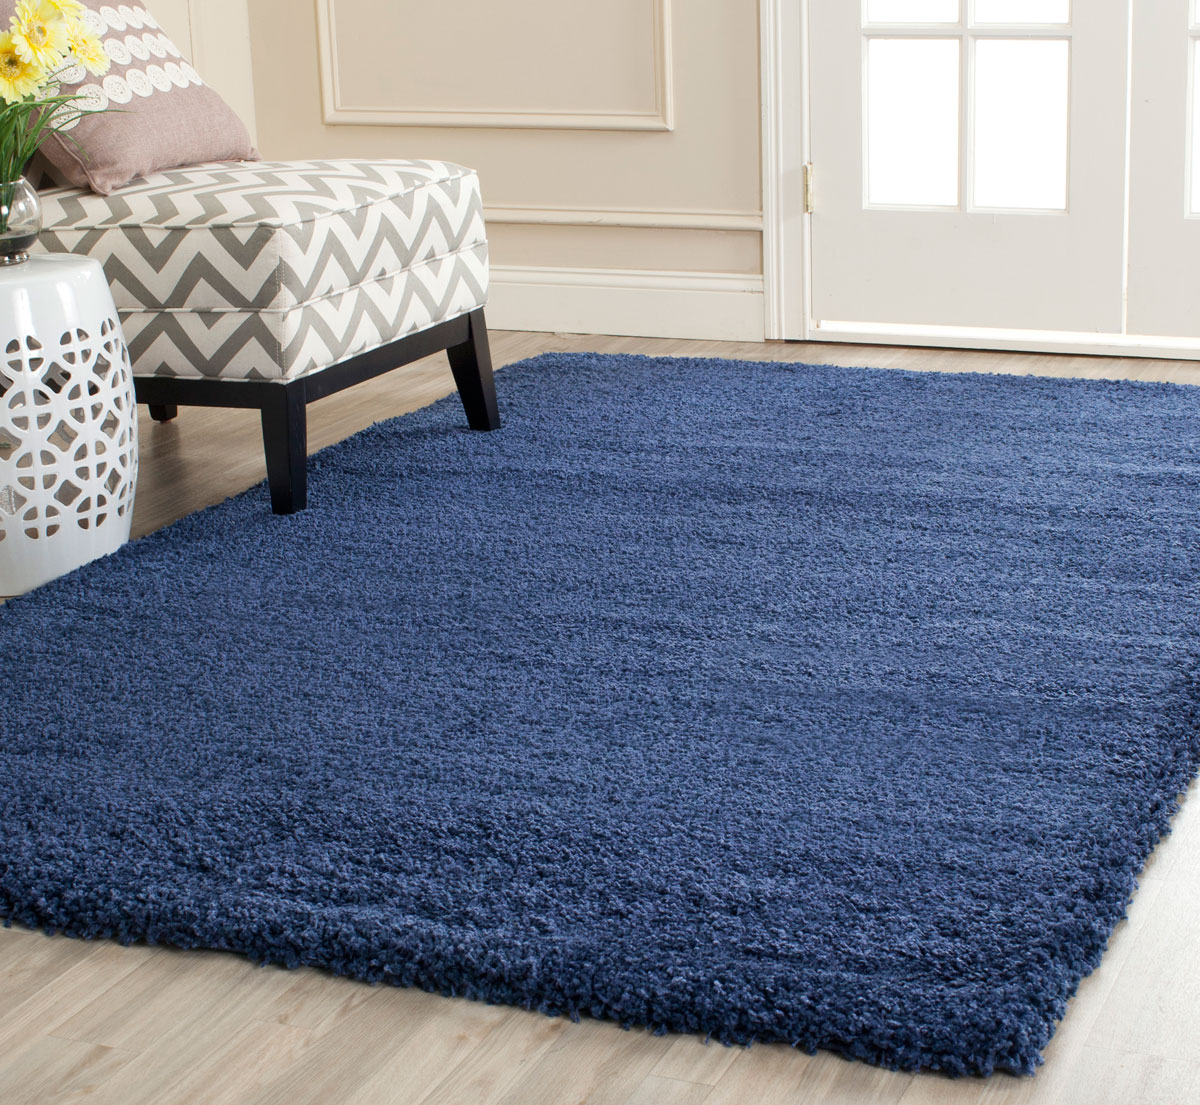 listing rectangle shaggy navy zoom rugs luxurious nonslip rich blue rug area fullxfull il